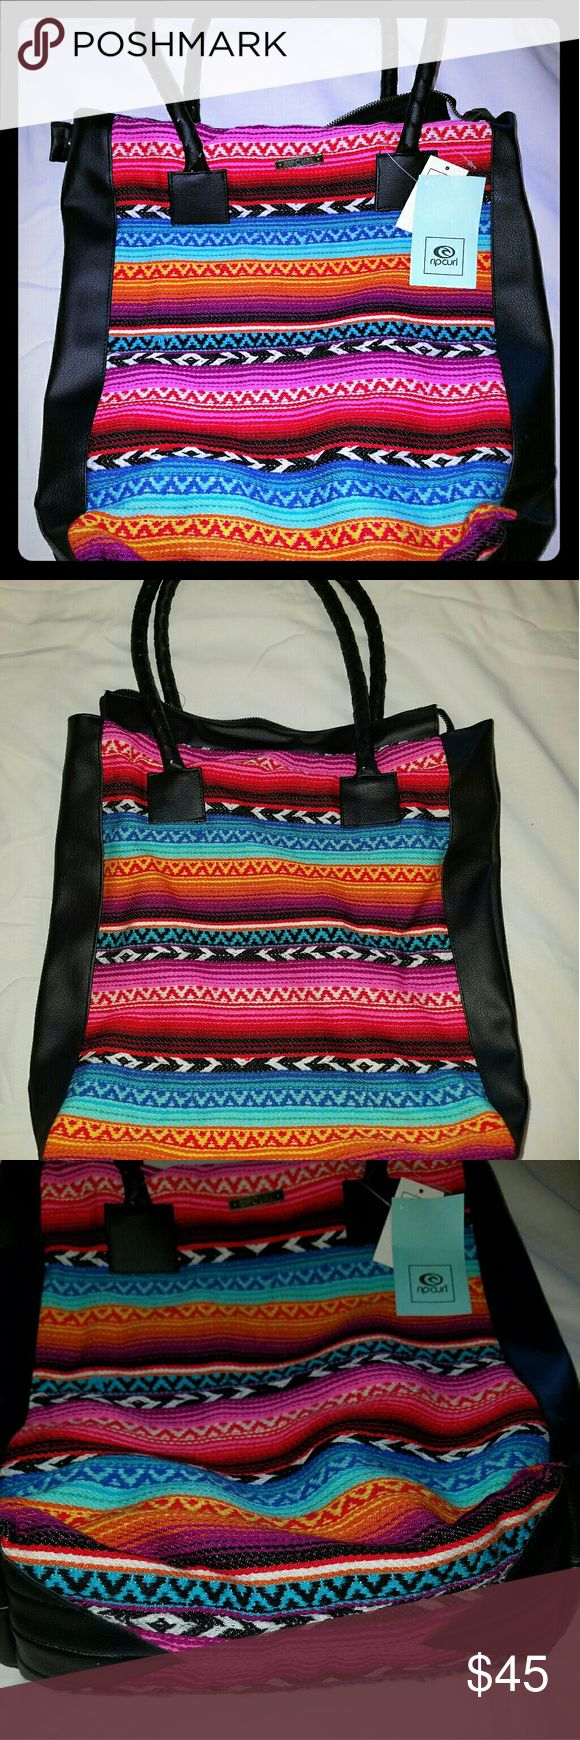 NWT RIPCURL aztec tote bag purse beach rip curl NWT RIPCURL aztec tote bag purse beach bag.  gorgeous bright colors! a zippered pocket and another small pocket inside. zips at the top Rip Curl Bags Totes